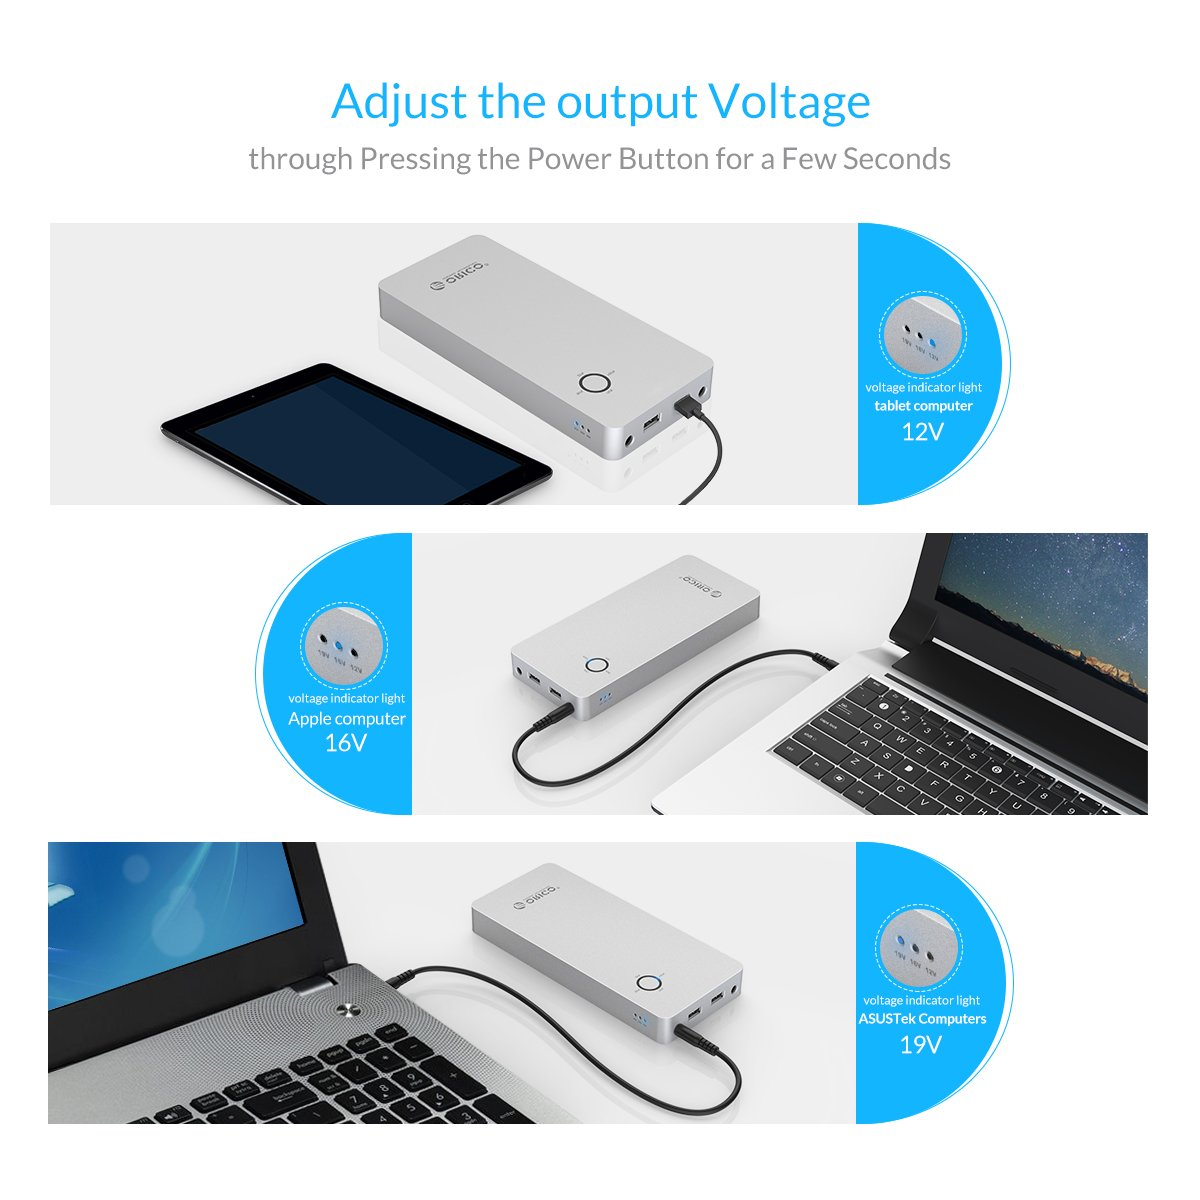 ORICO 18000mAh Aluminum Power Bank with DC input/output and 2 Quick Charge USB Ports - Perfect for PC, Laptop, Phone, Kindle, Tablets & More by ORICO (Image #2)